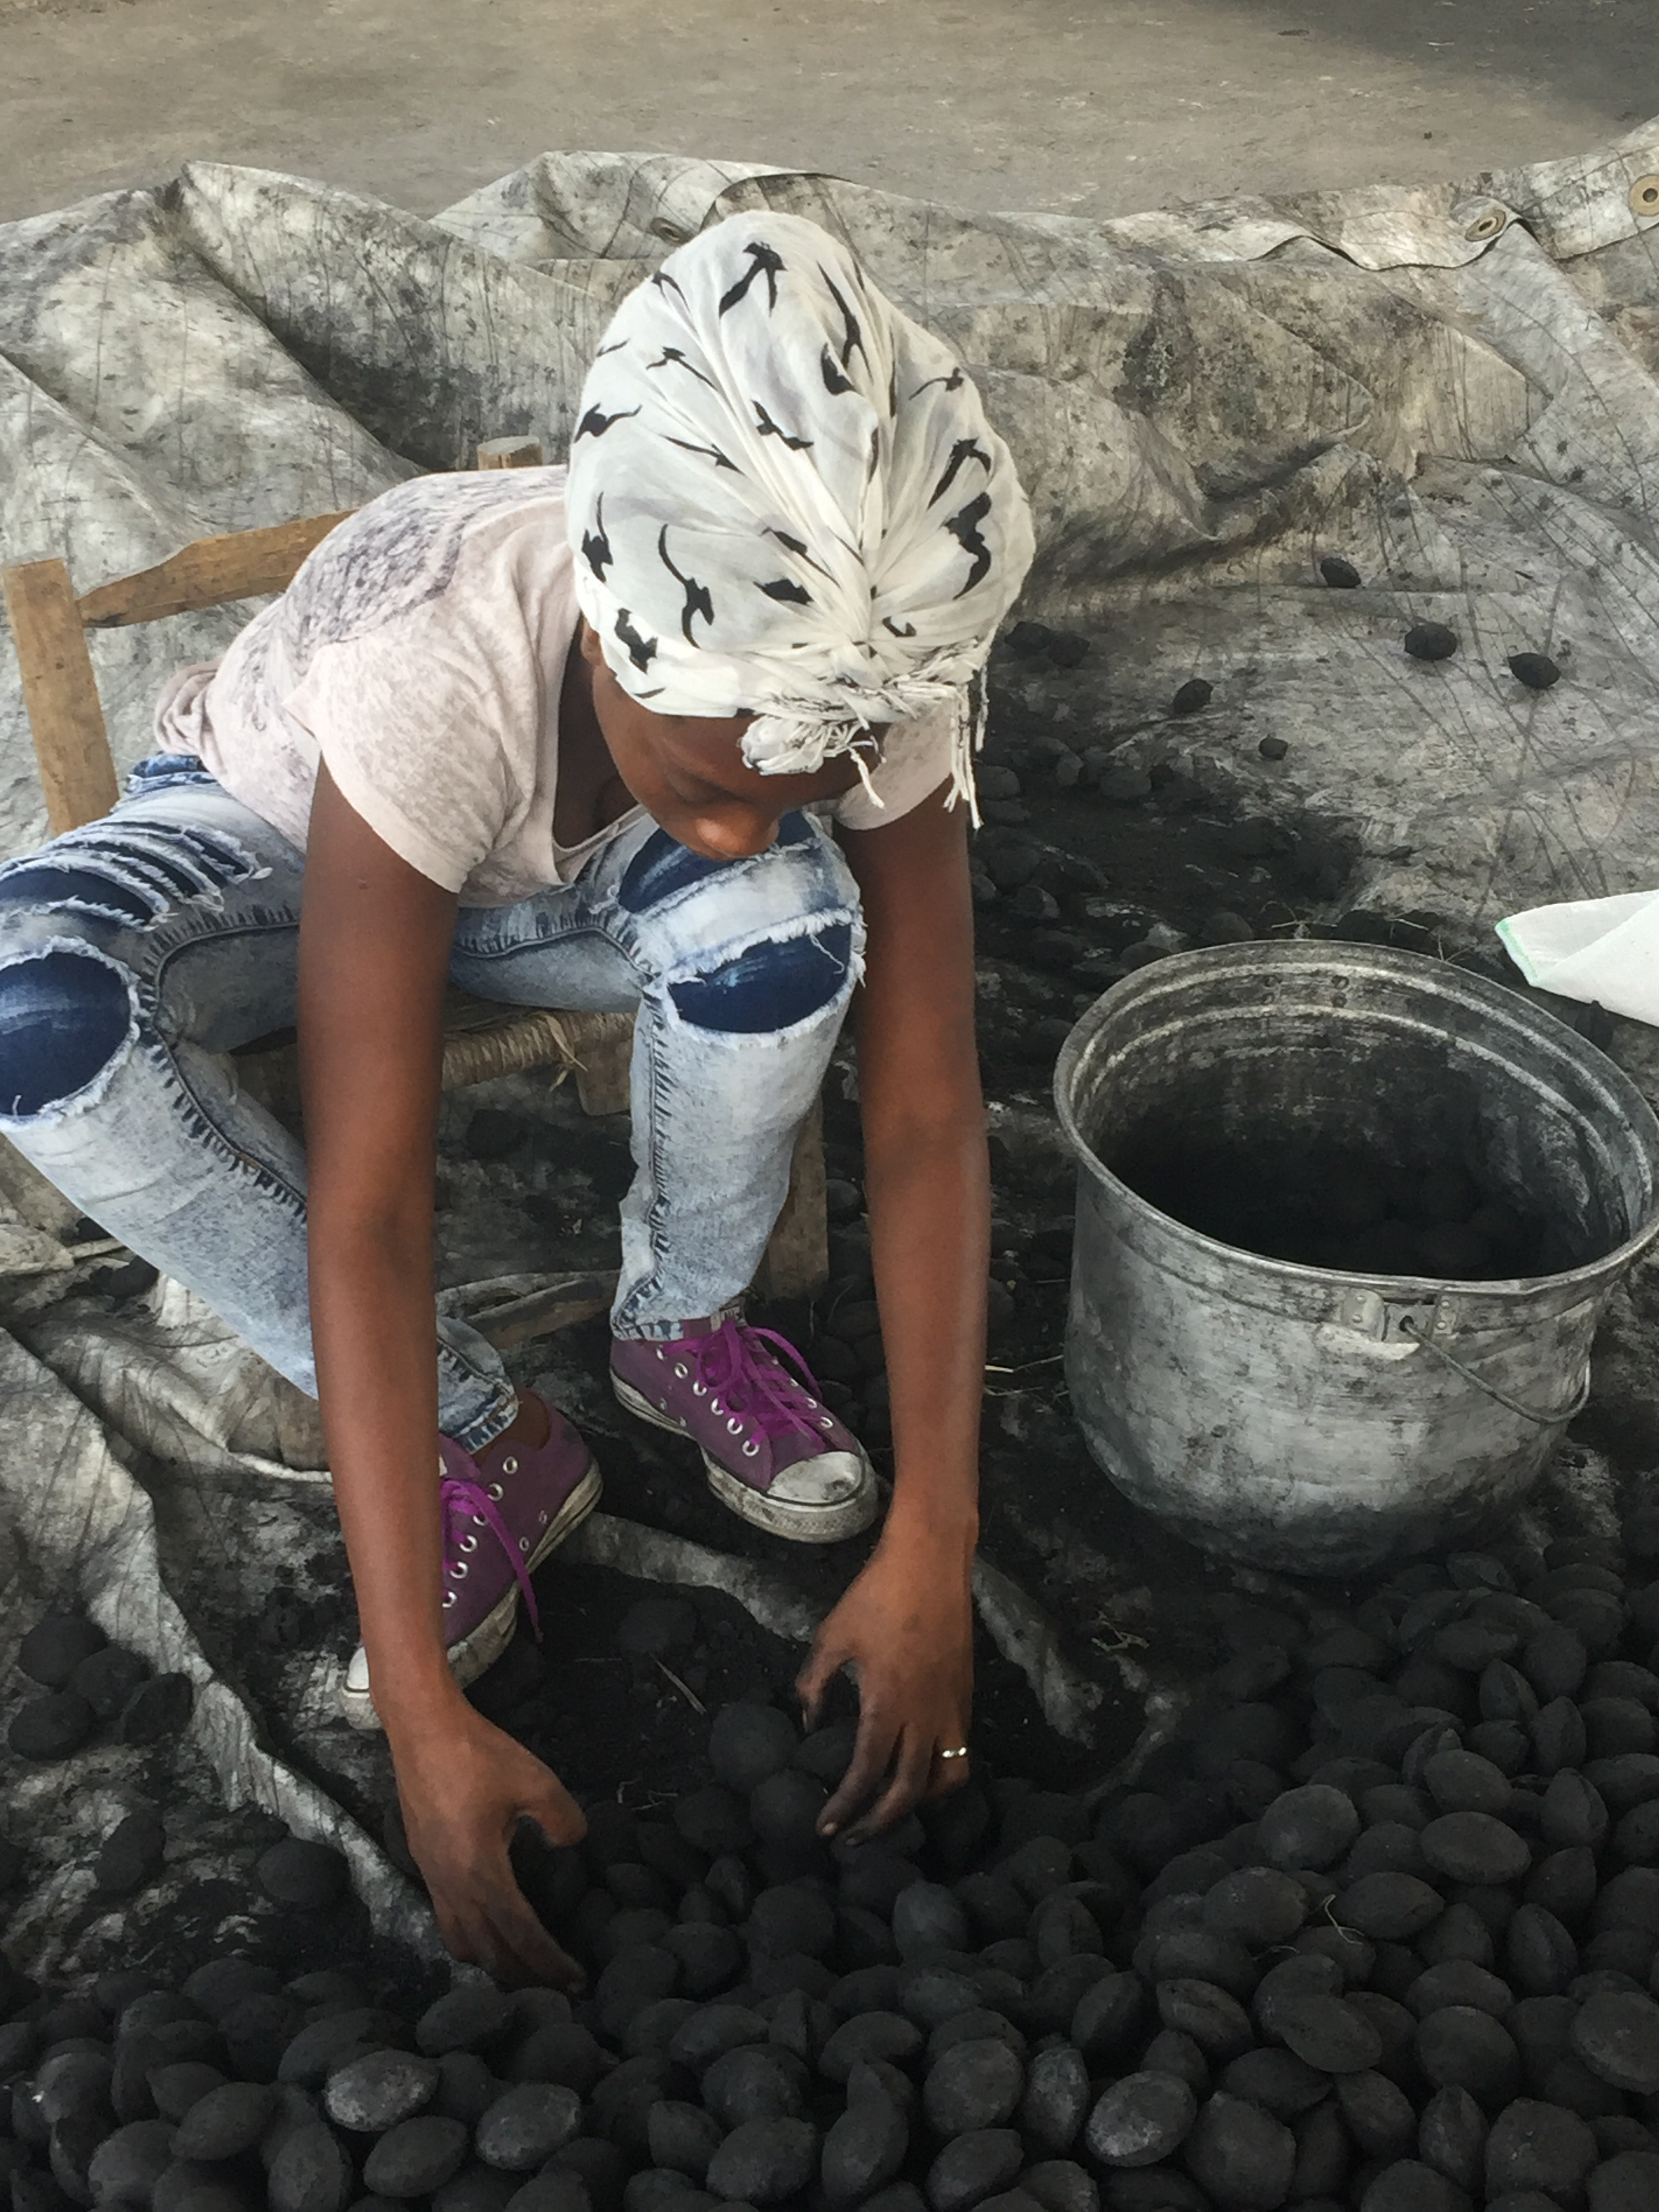 8. The charcoal mixture is pressed into briquettes and dried until hard and durable.